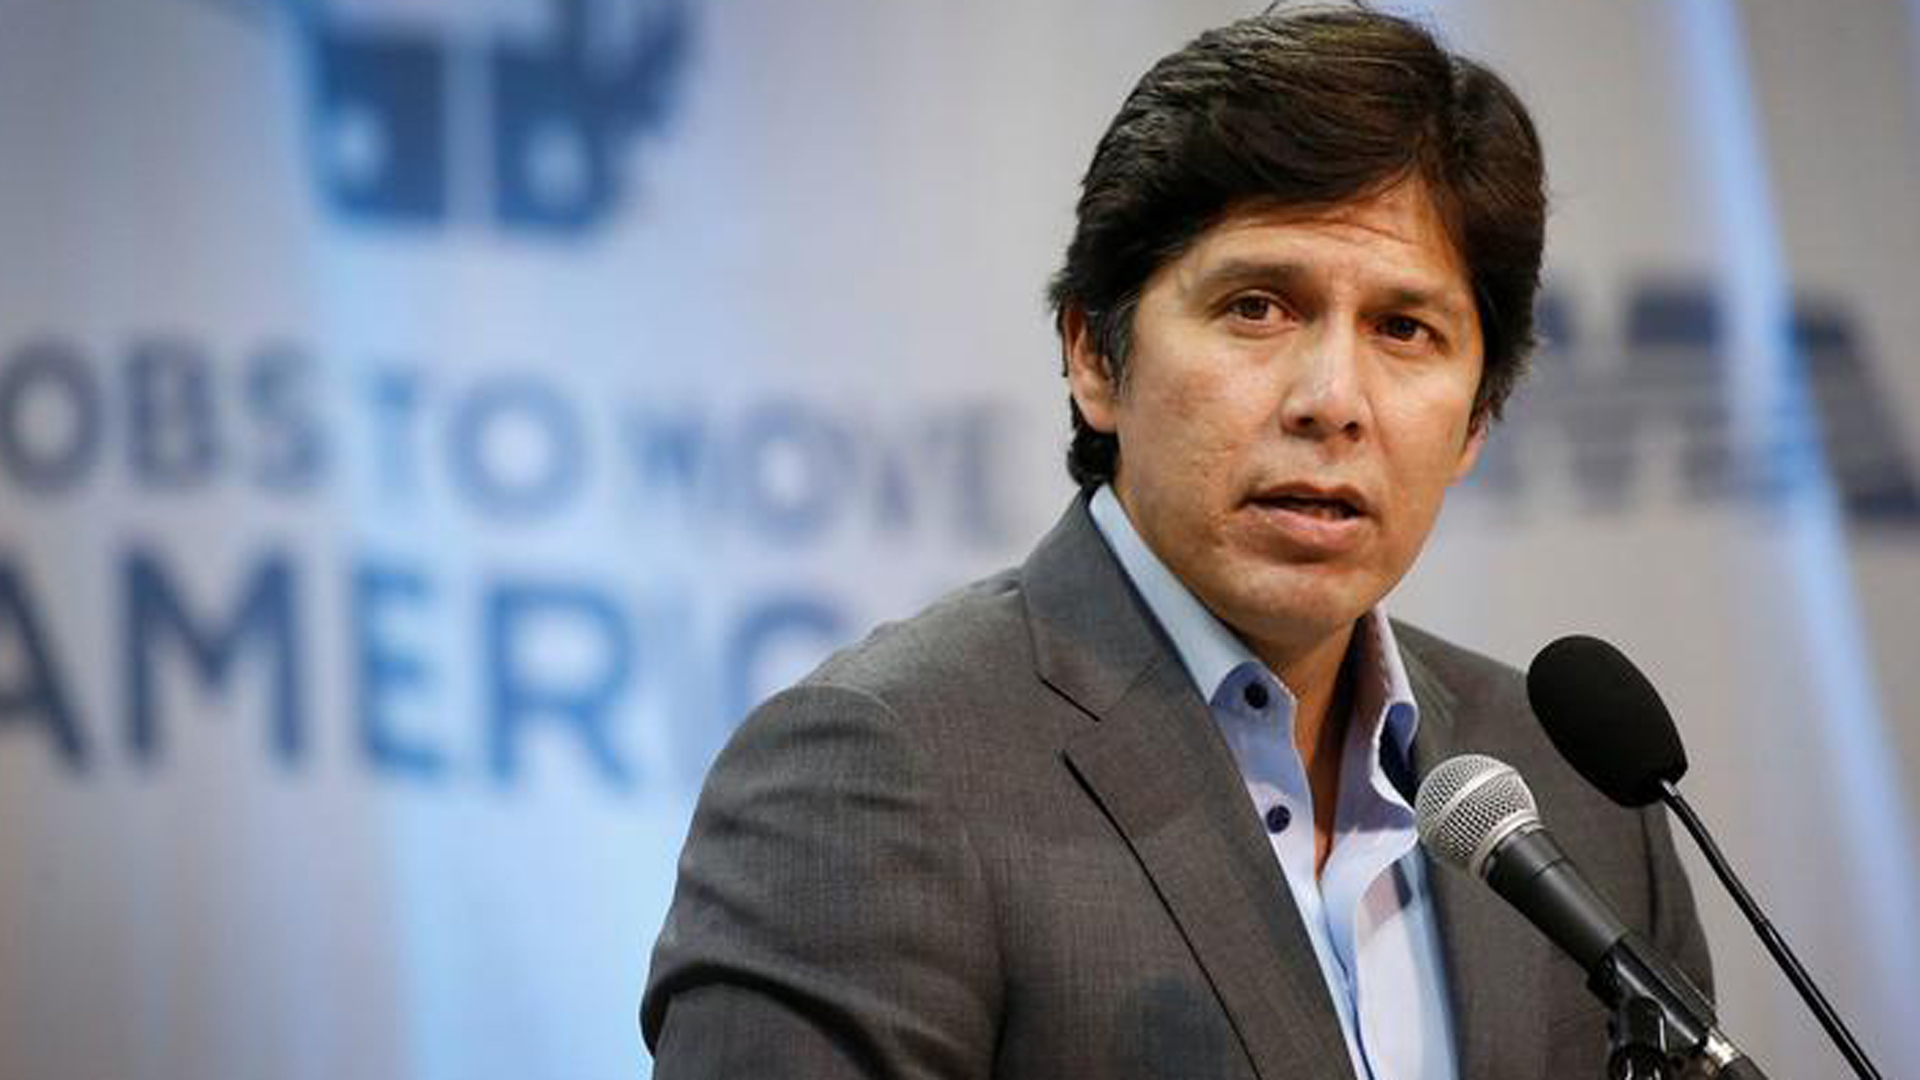 """Last week, California beat President Trump in a federal court battle over the future of the DACA program, and the Dreamers who continue to live here under its protection,"" De León said in a statement. ""Now, he is lashing out."" (Credit: Al Seib / Los Angeles Times)"